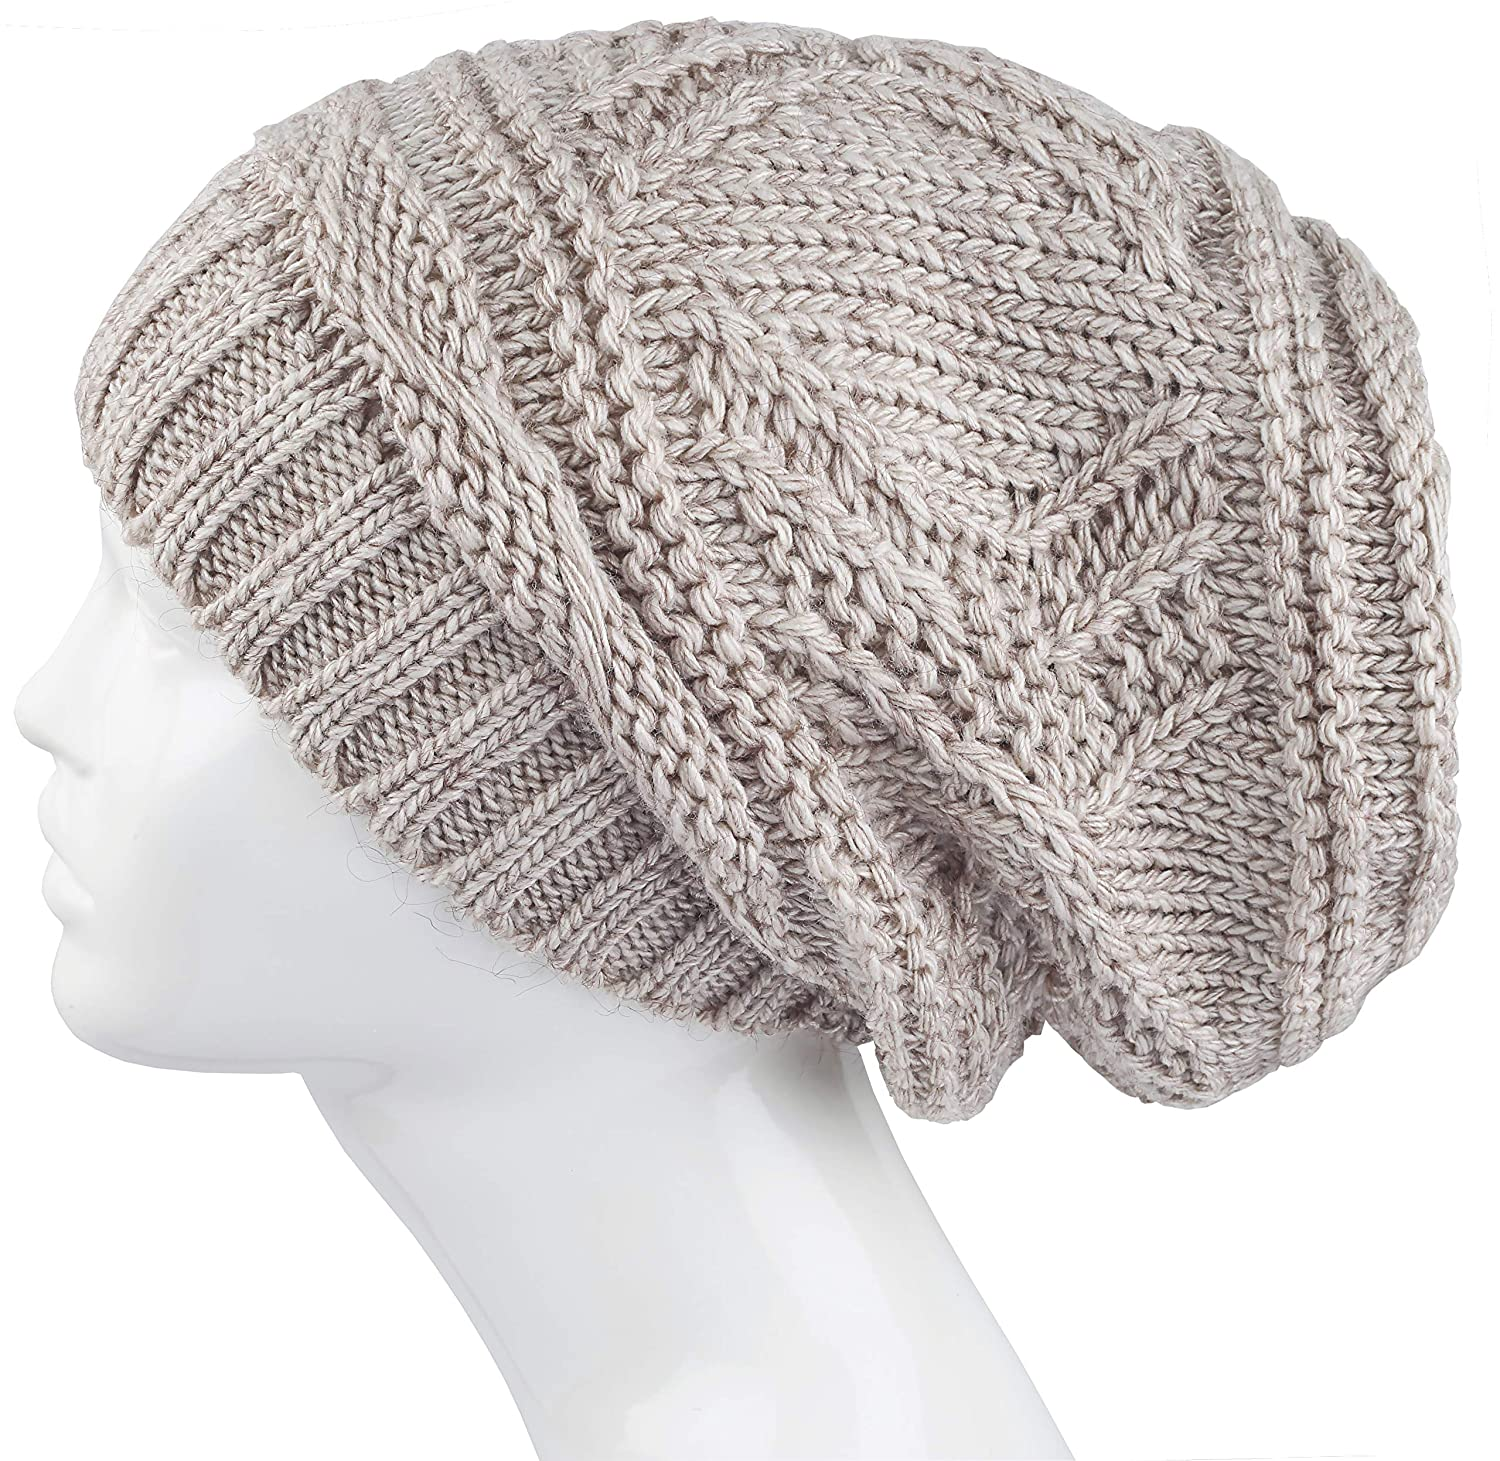 93b2d8f261f Lilax Knit Slouchy Oversized Soft Warm Winter Beanie Hat Beige at Amazon  Women s Clothing store